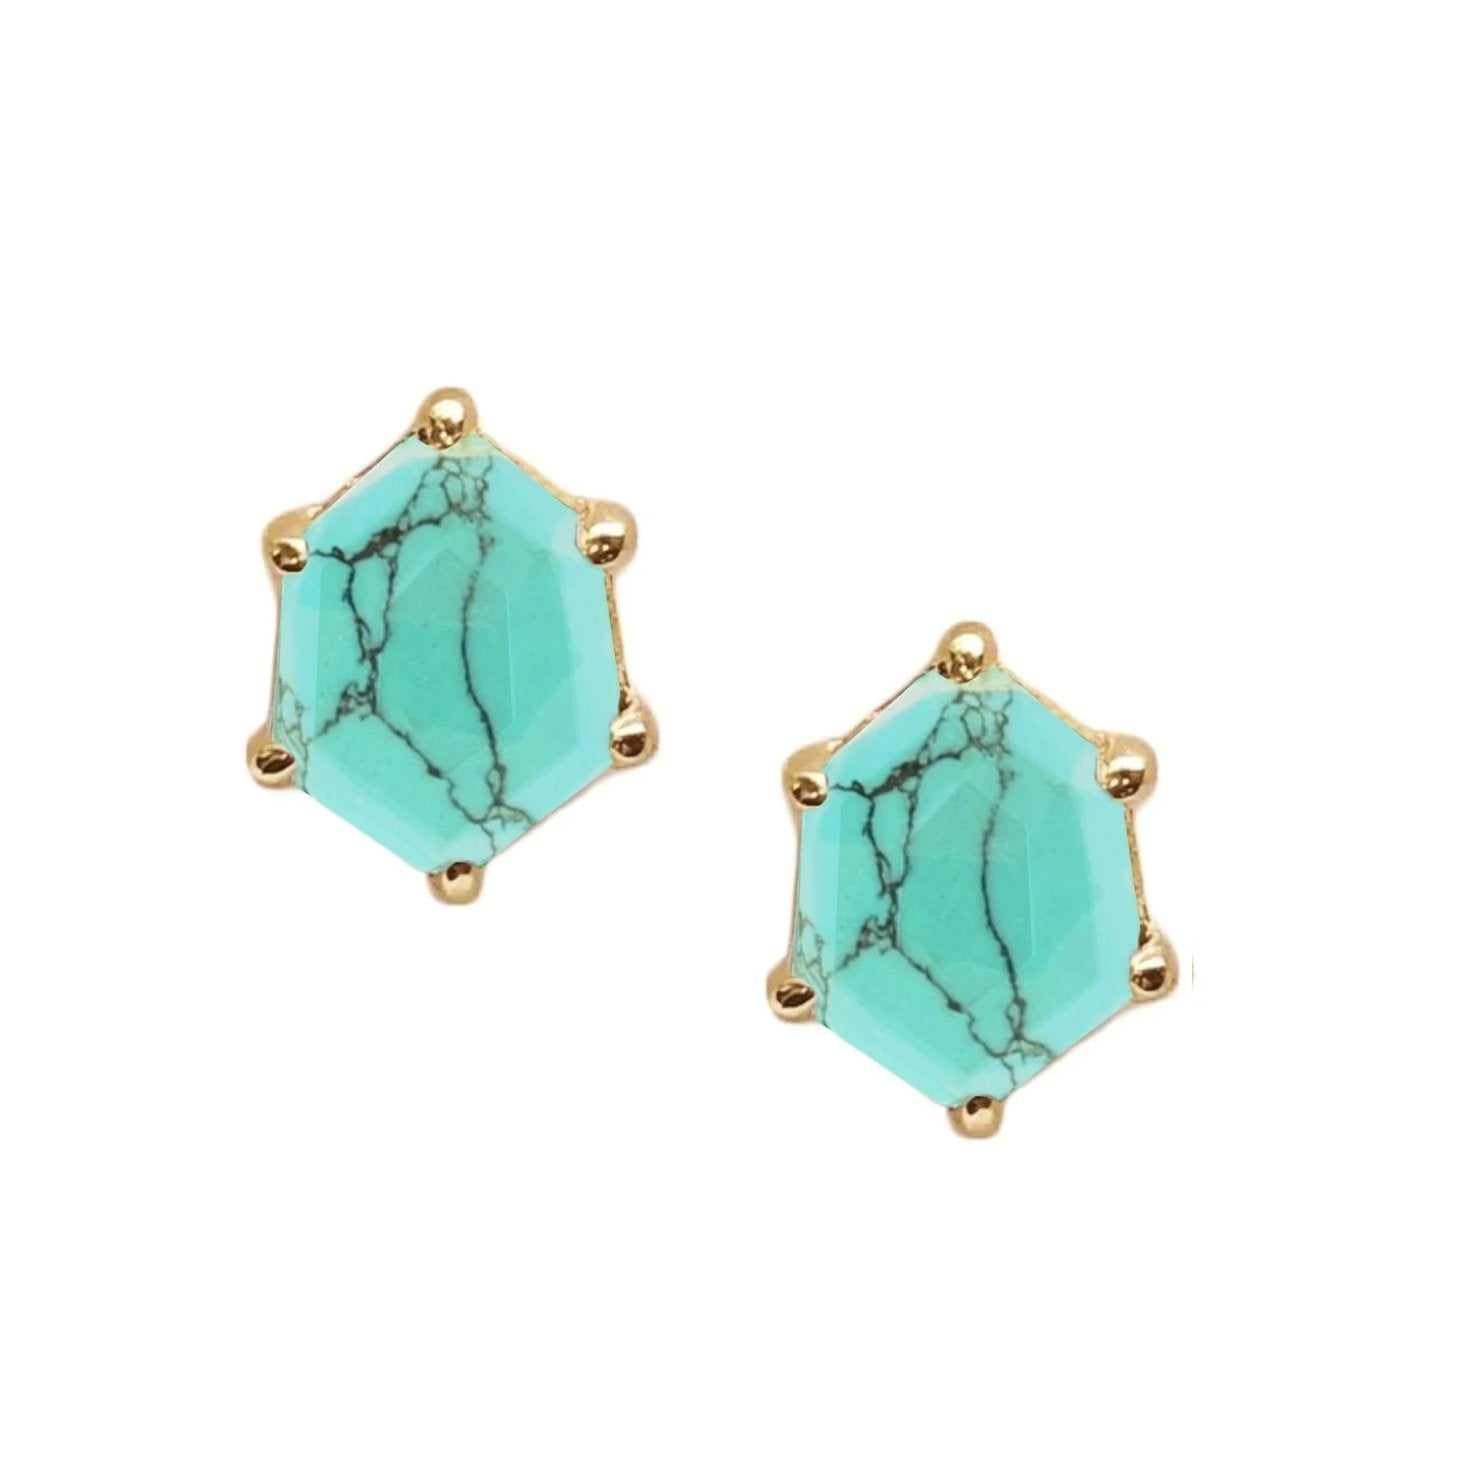 MINI HONOUR SHIELD STUD EARRINGS - TURQUOISE & GOLD - SO PRETTY CARA COTTER